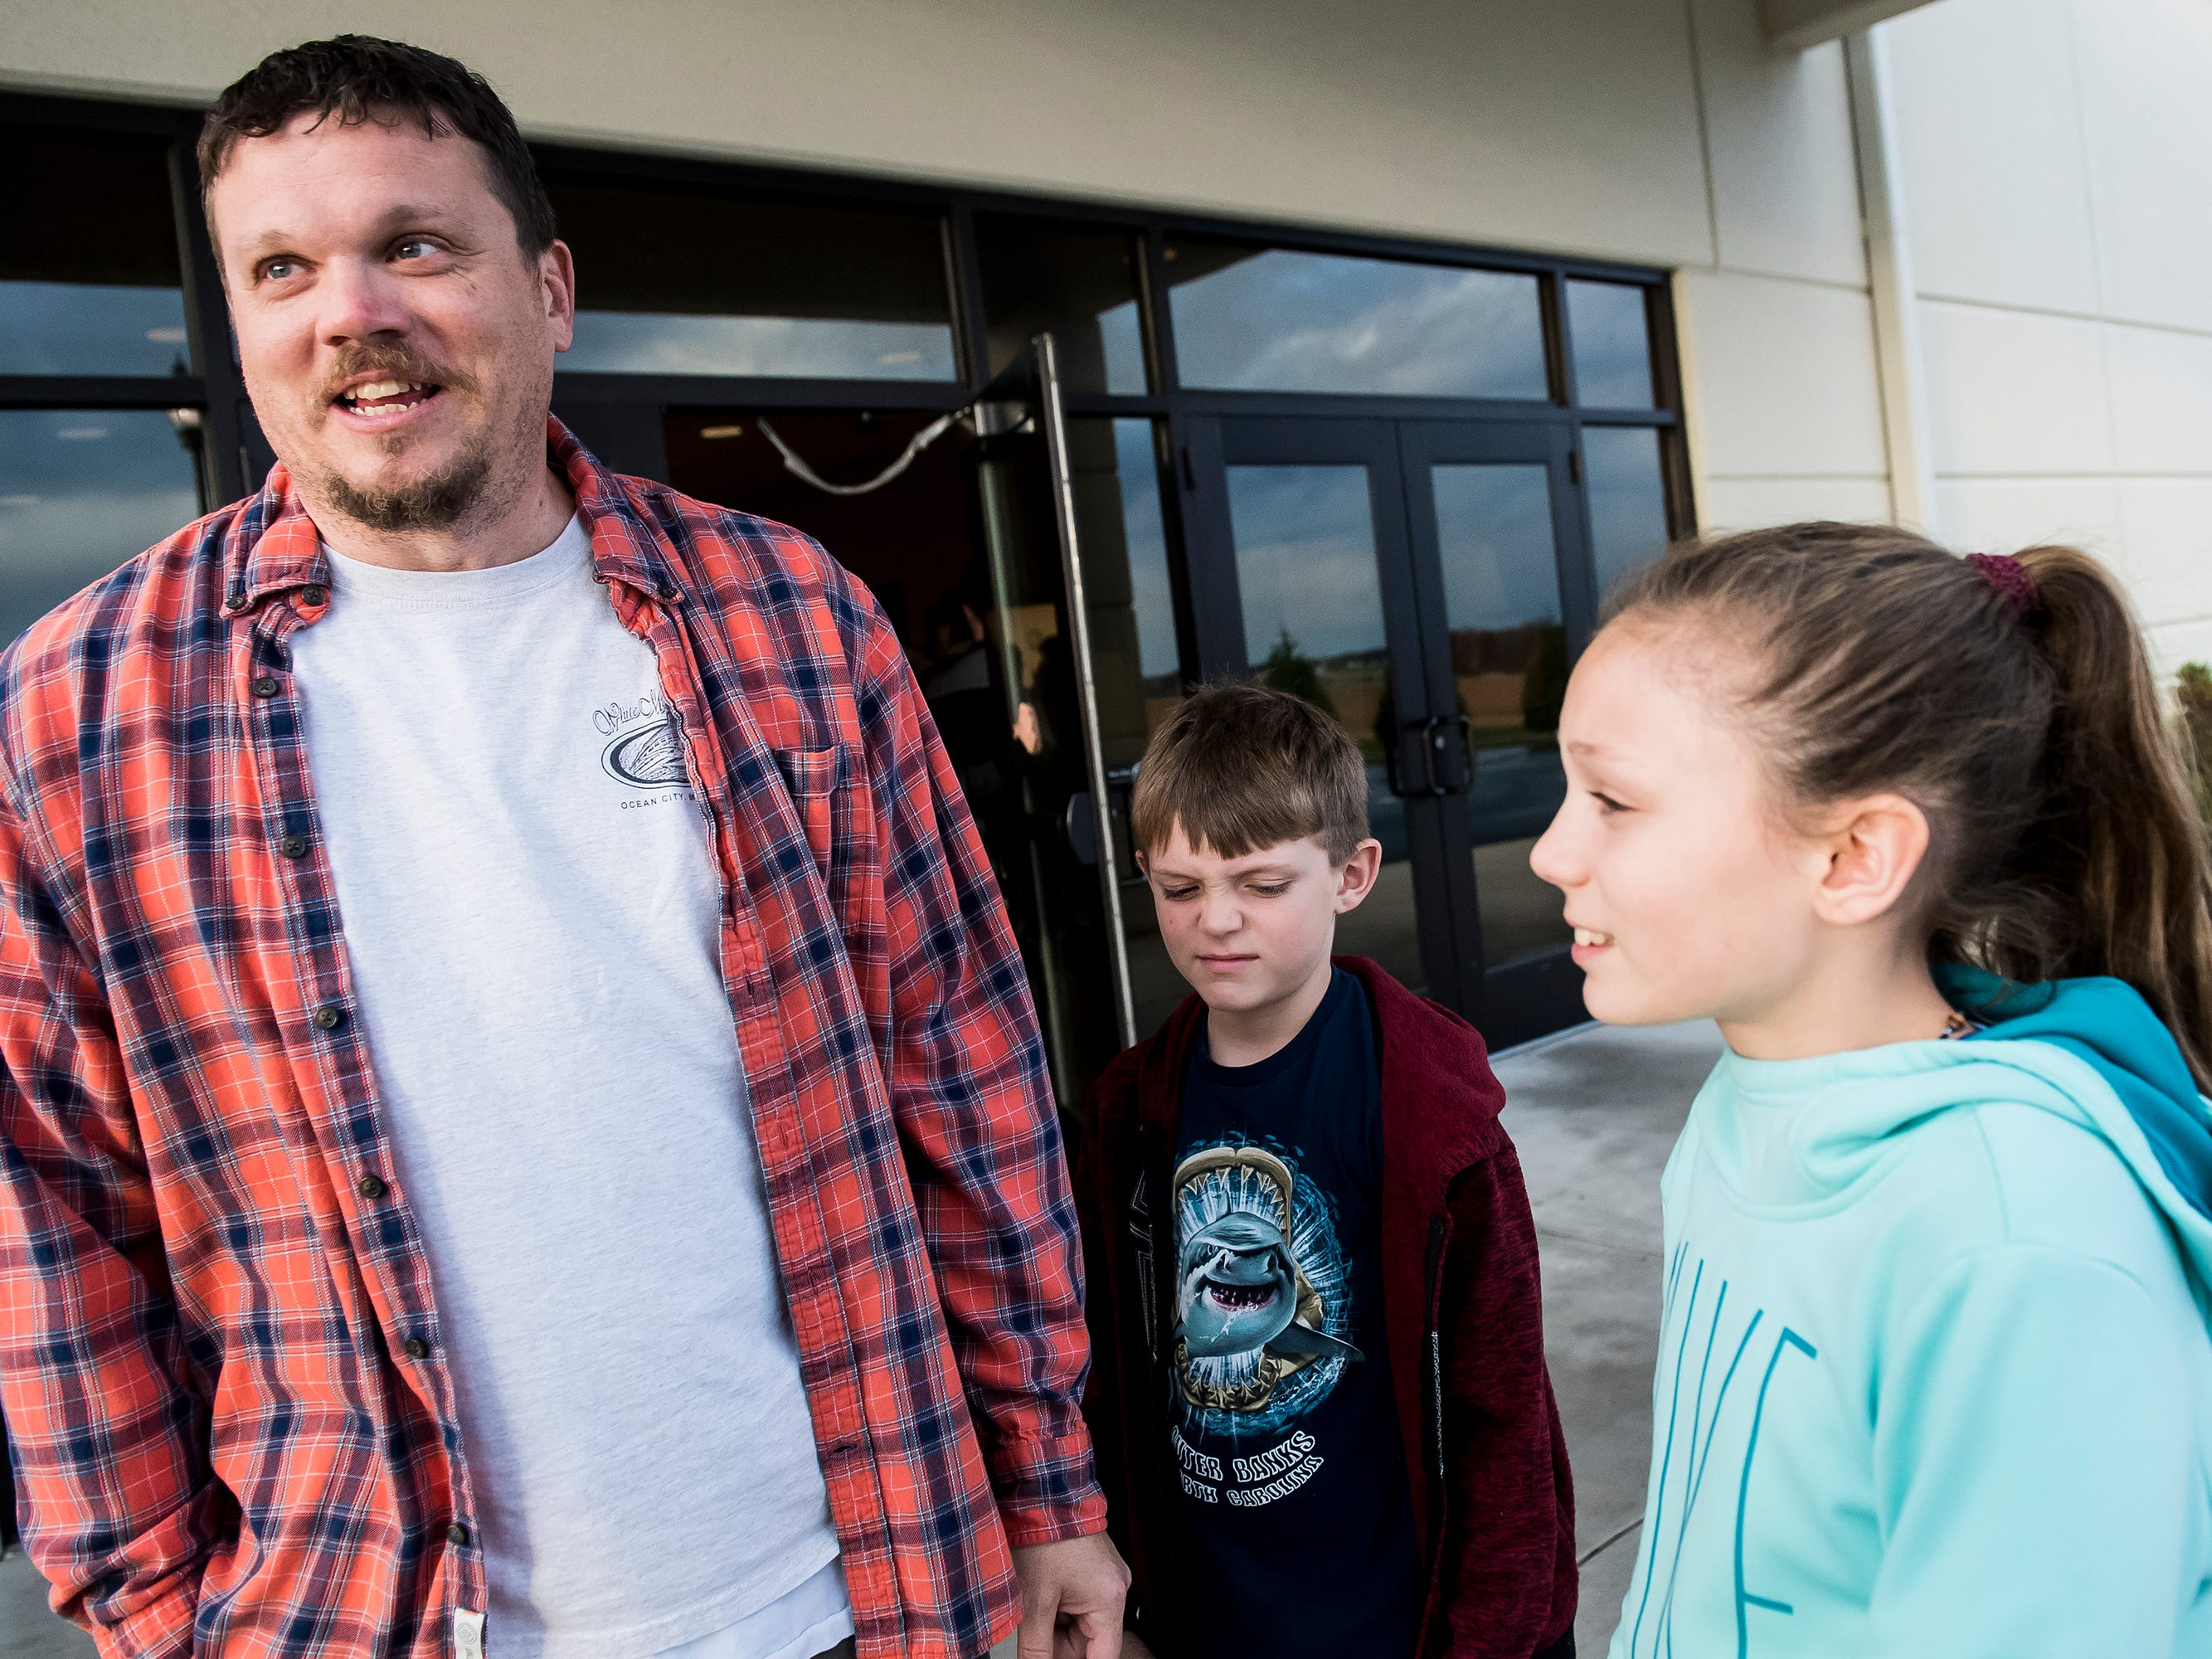 Siblings Lucy Laughlin, 10, and Eli Laughlin, 7, stand next to their dad, Billy Laughlin, after visiting a polling station at the Southeastern Adams Volunteer Emergency Services building in Conewago Township on Tuesday, November 6, 2018.